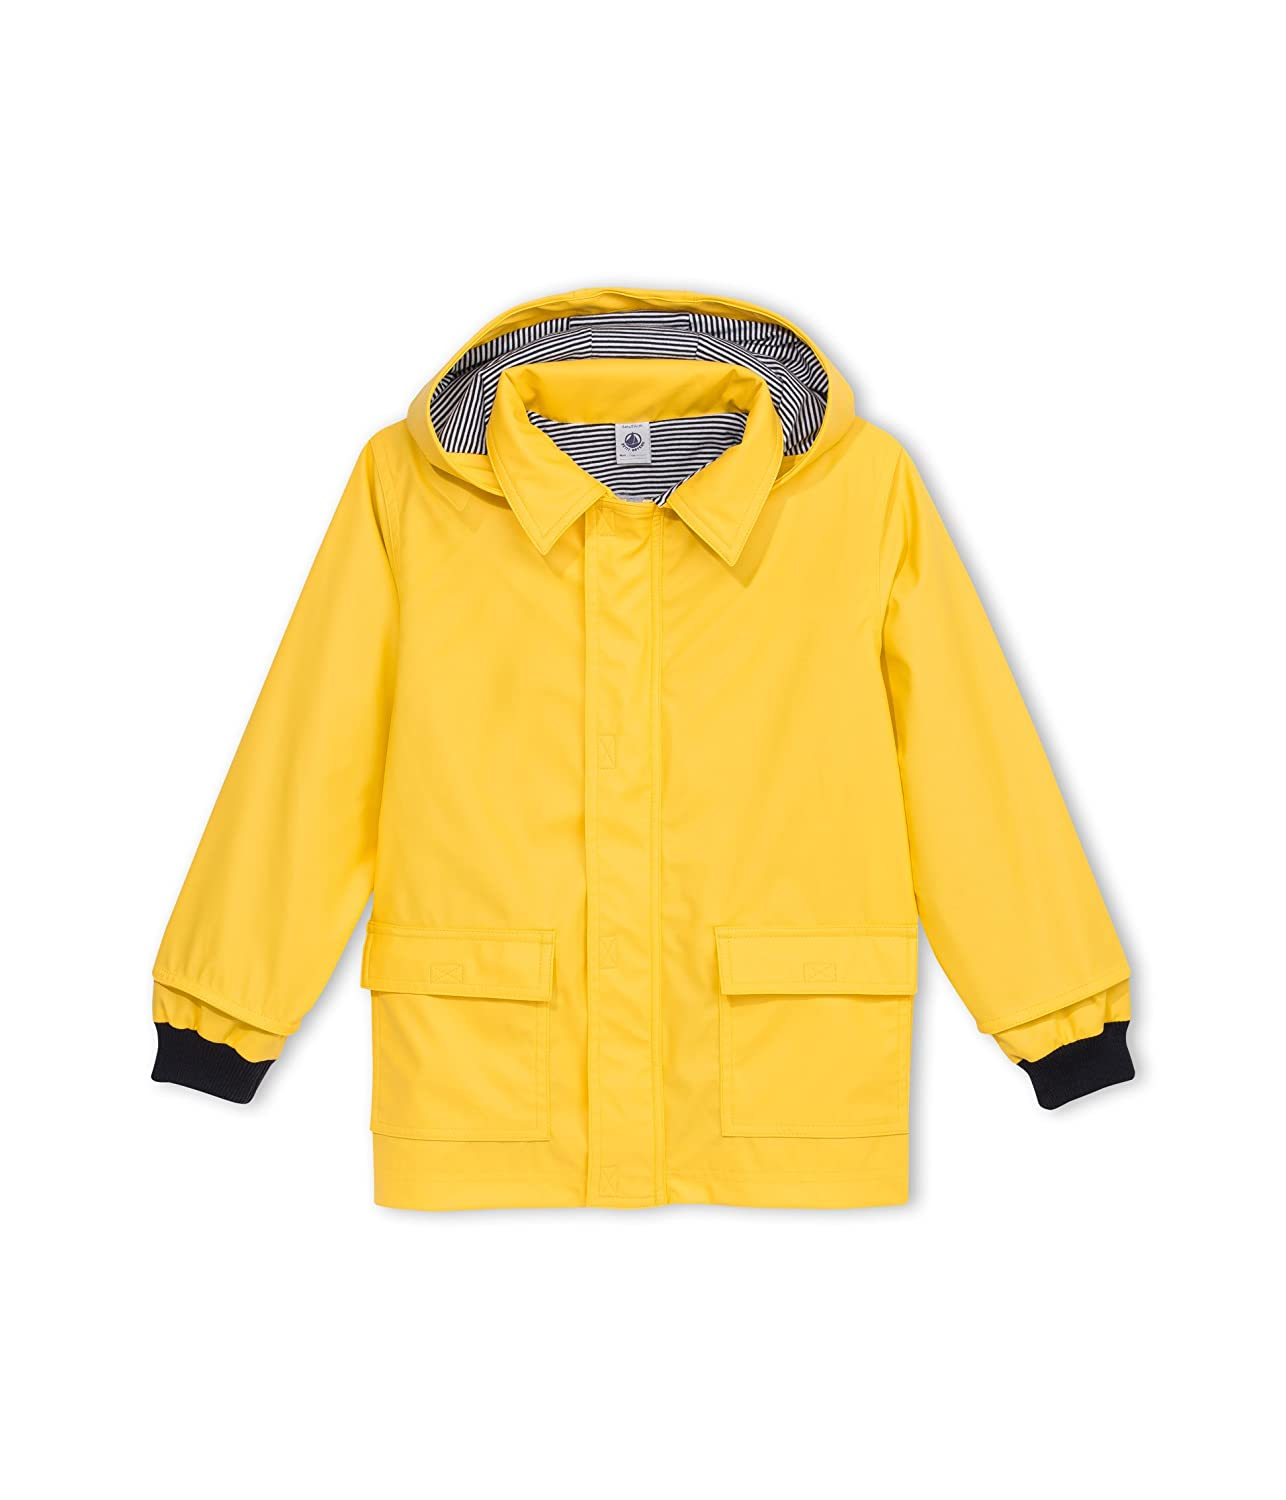 Petit Bateau Boy's Cire Long Sleeve Raincoat 35820